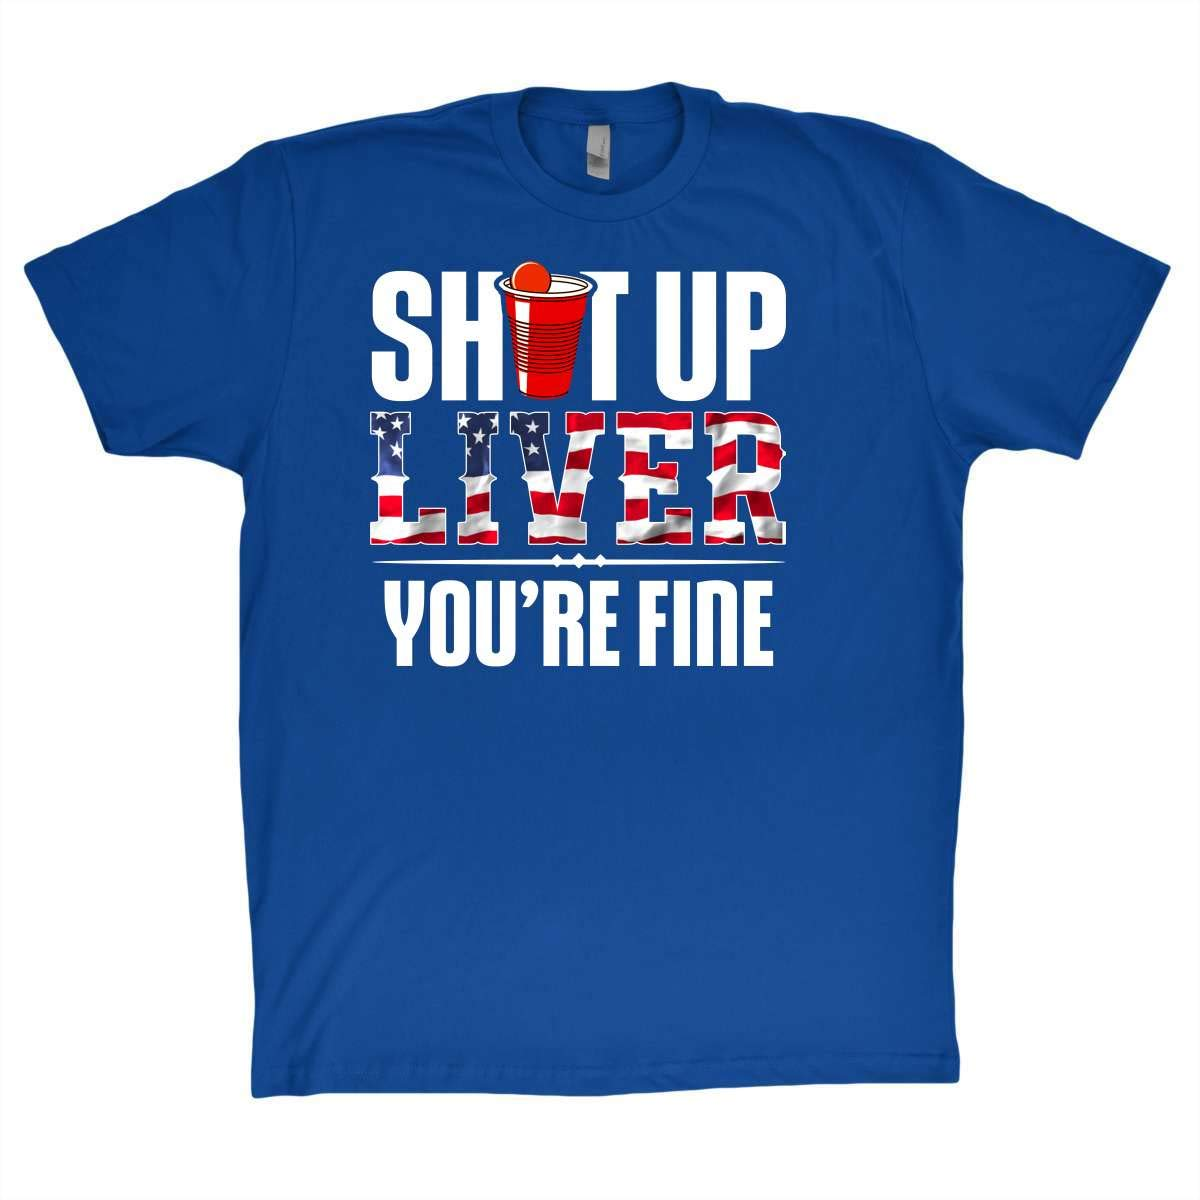 Beer Shirt Shut Up Liver You Are Fine Funny T Shirt